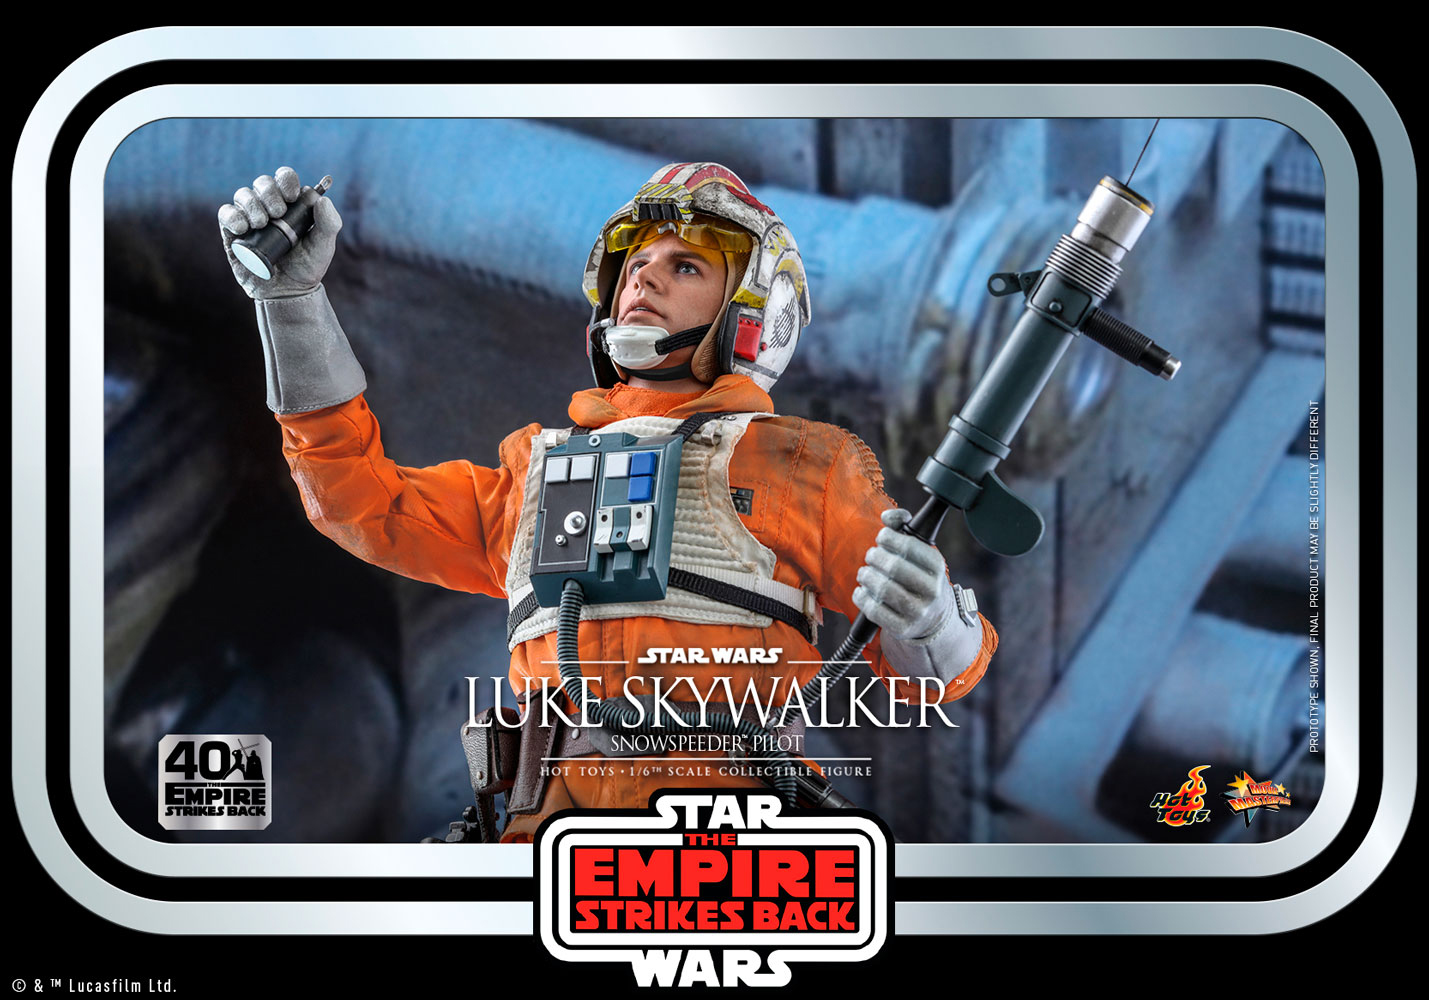 Luke Skywalker - Snowspeeder Pilot  Star Wars: The Empire Strikes Back 40th Anniversary Collection - Movie Masterpiece Series